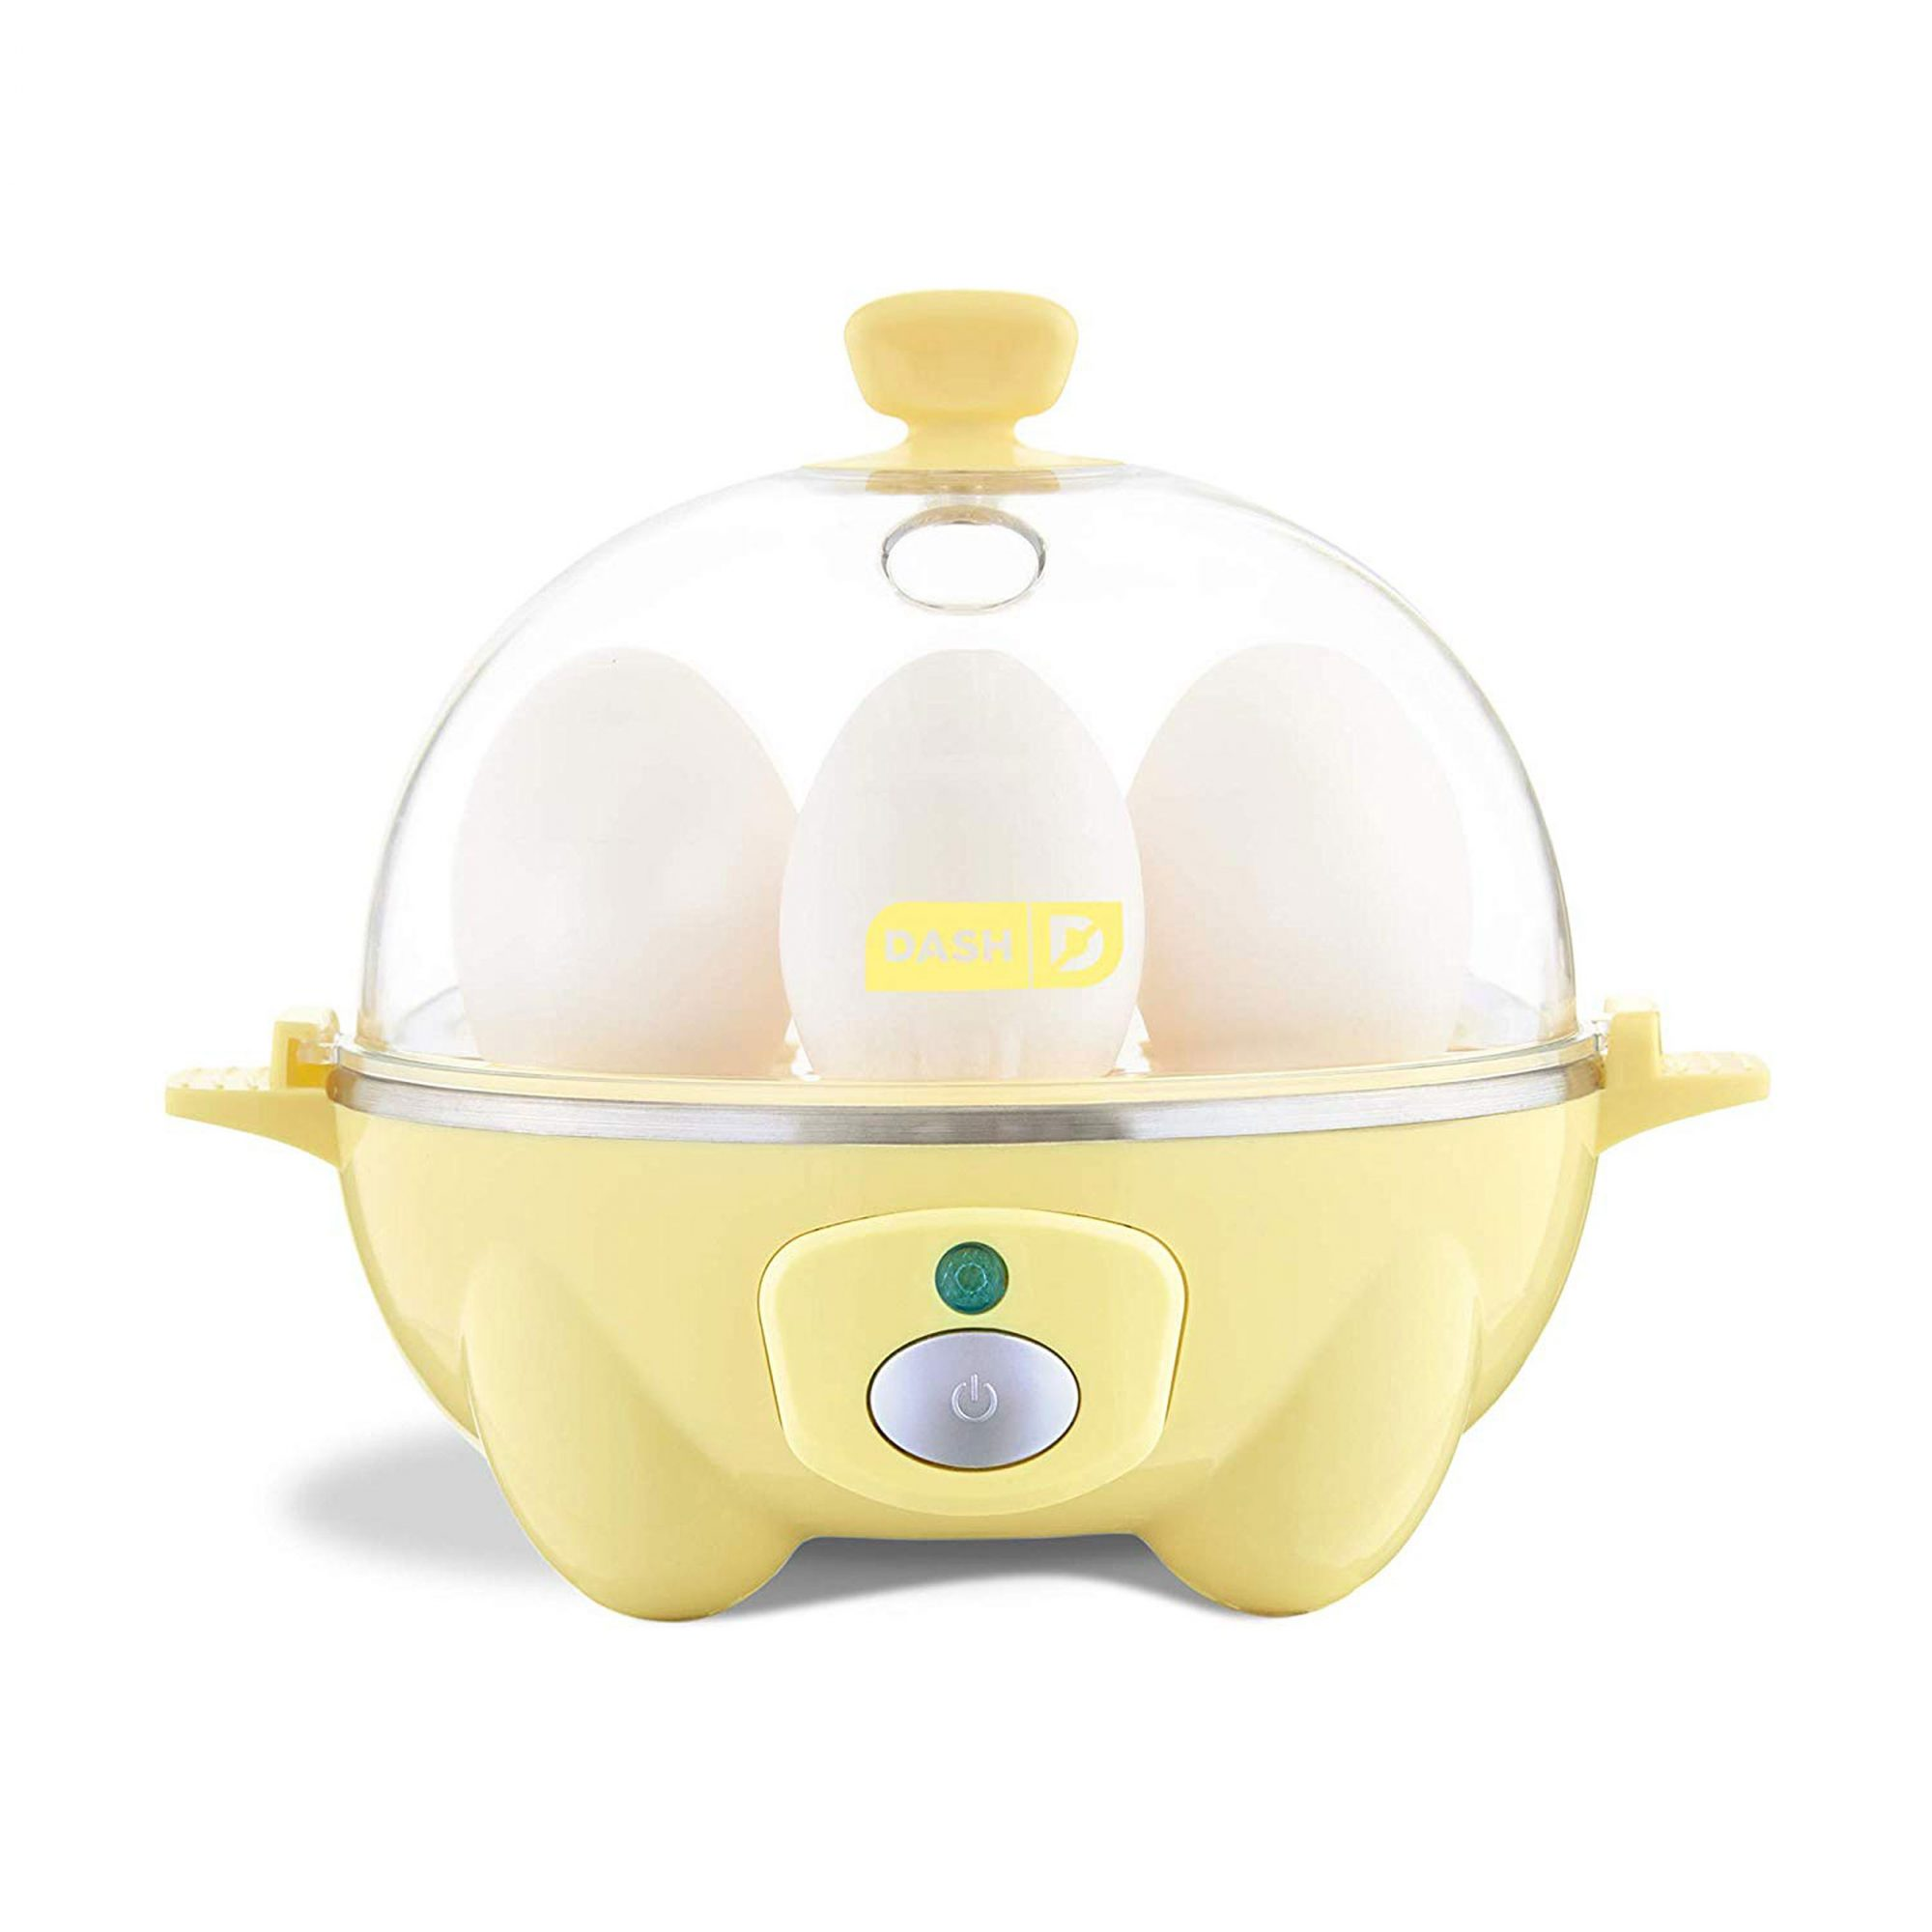 most popular kitchen tools amazon egg cooker